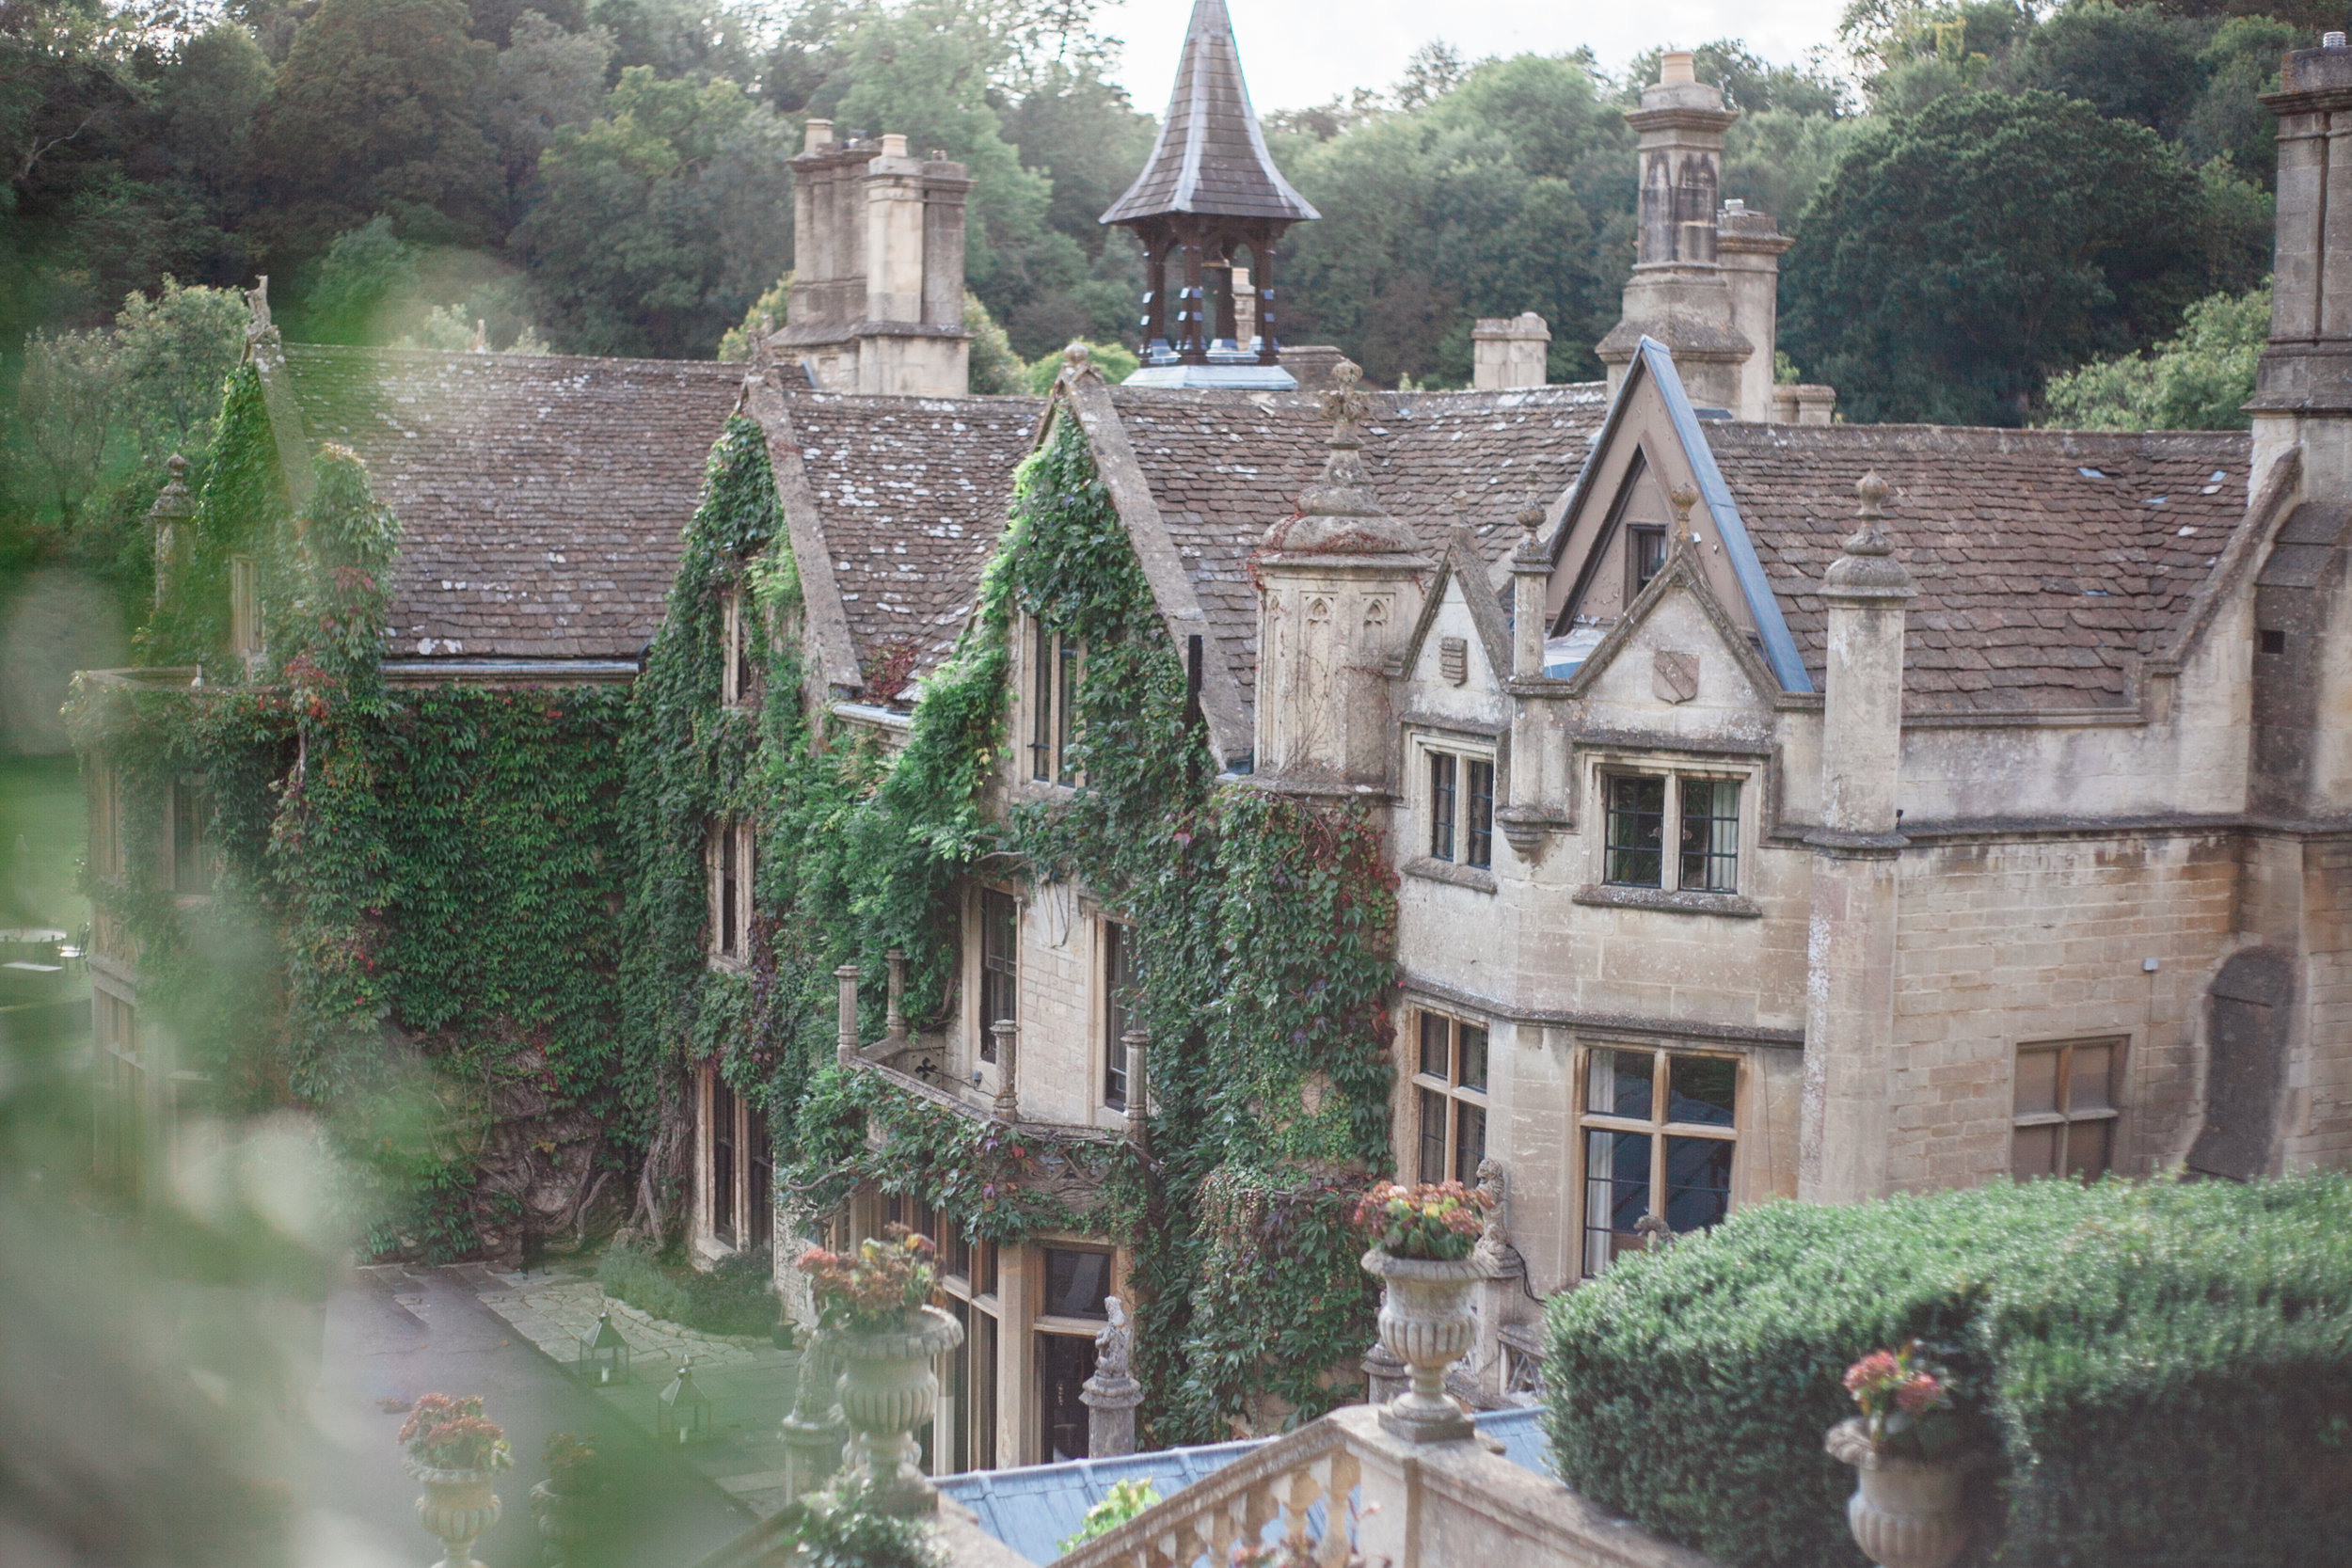 day_three_cotswolds (78 of 133).jpg